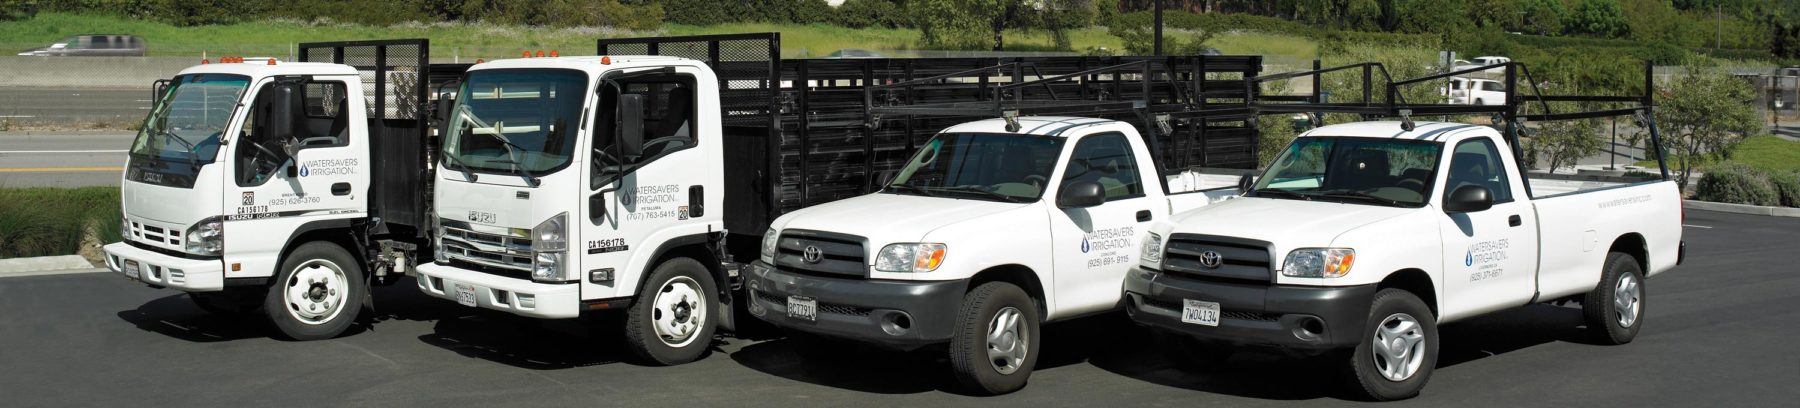 Truck fleet for the best local delivery service in the industry